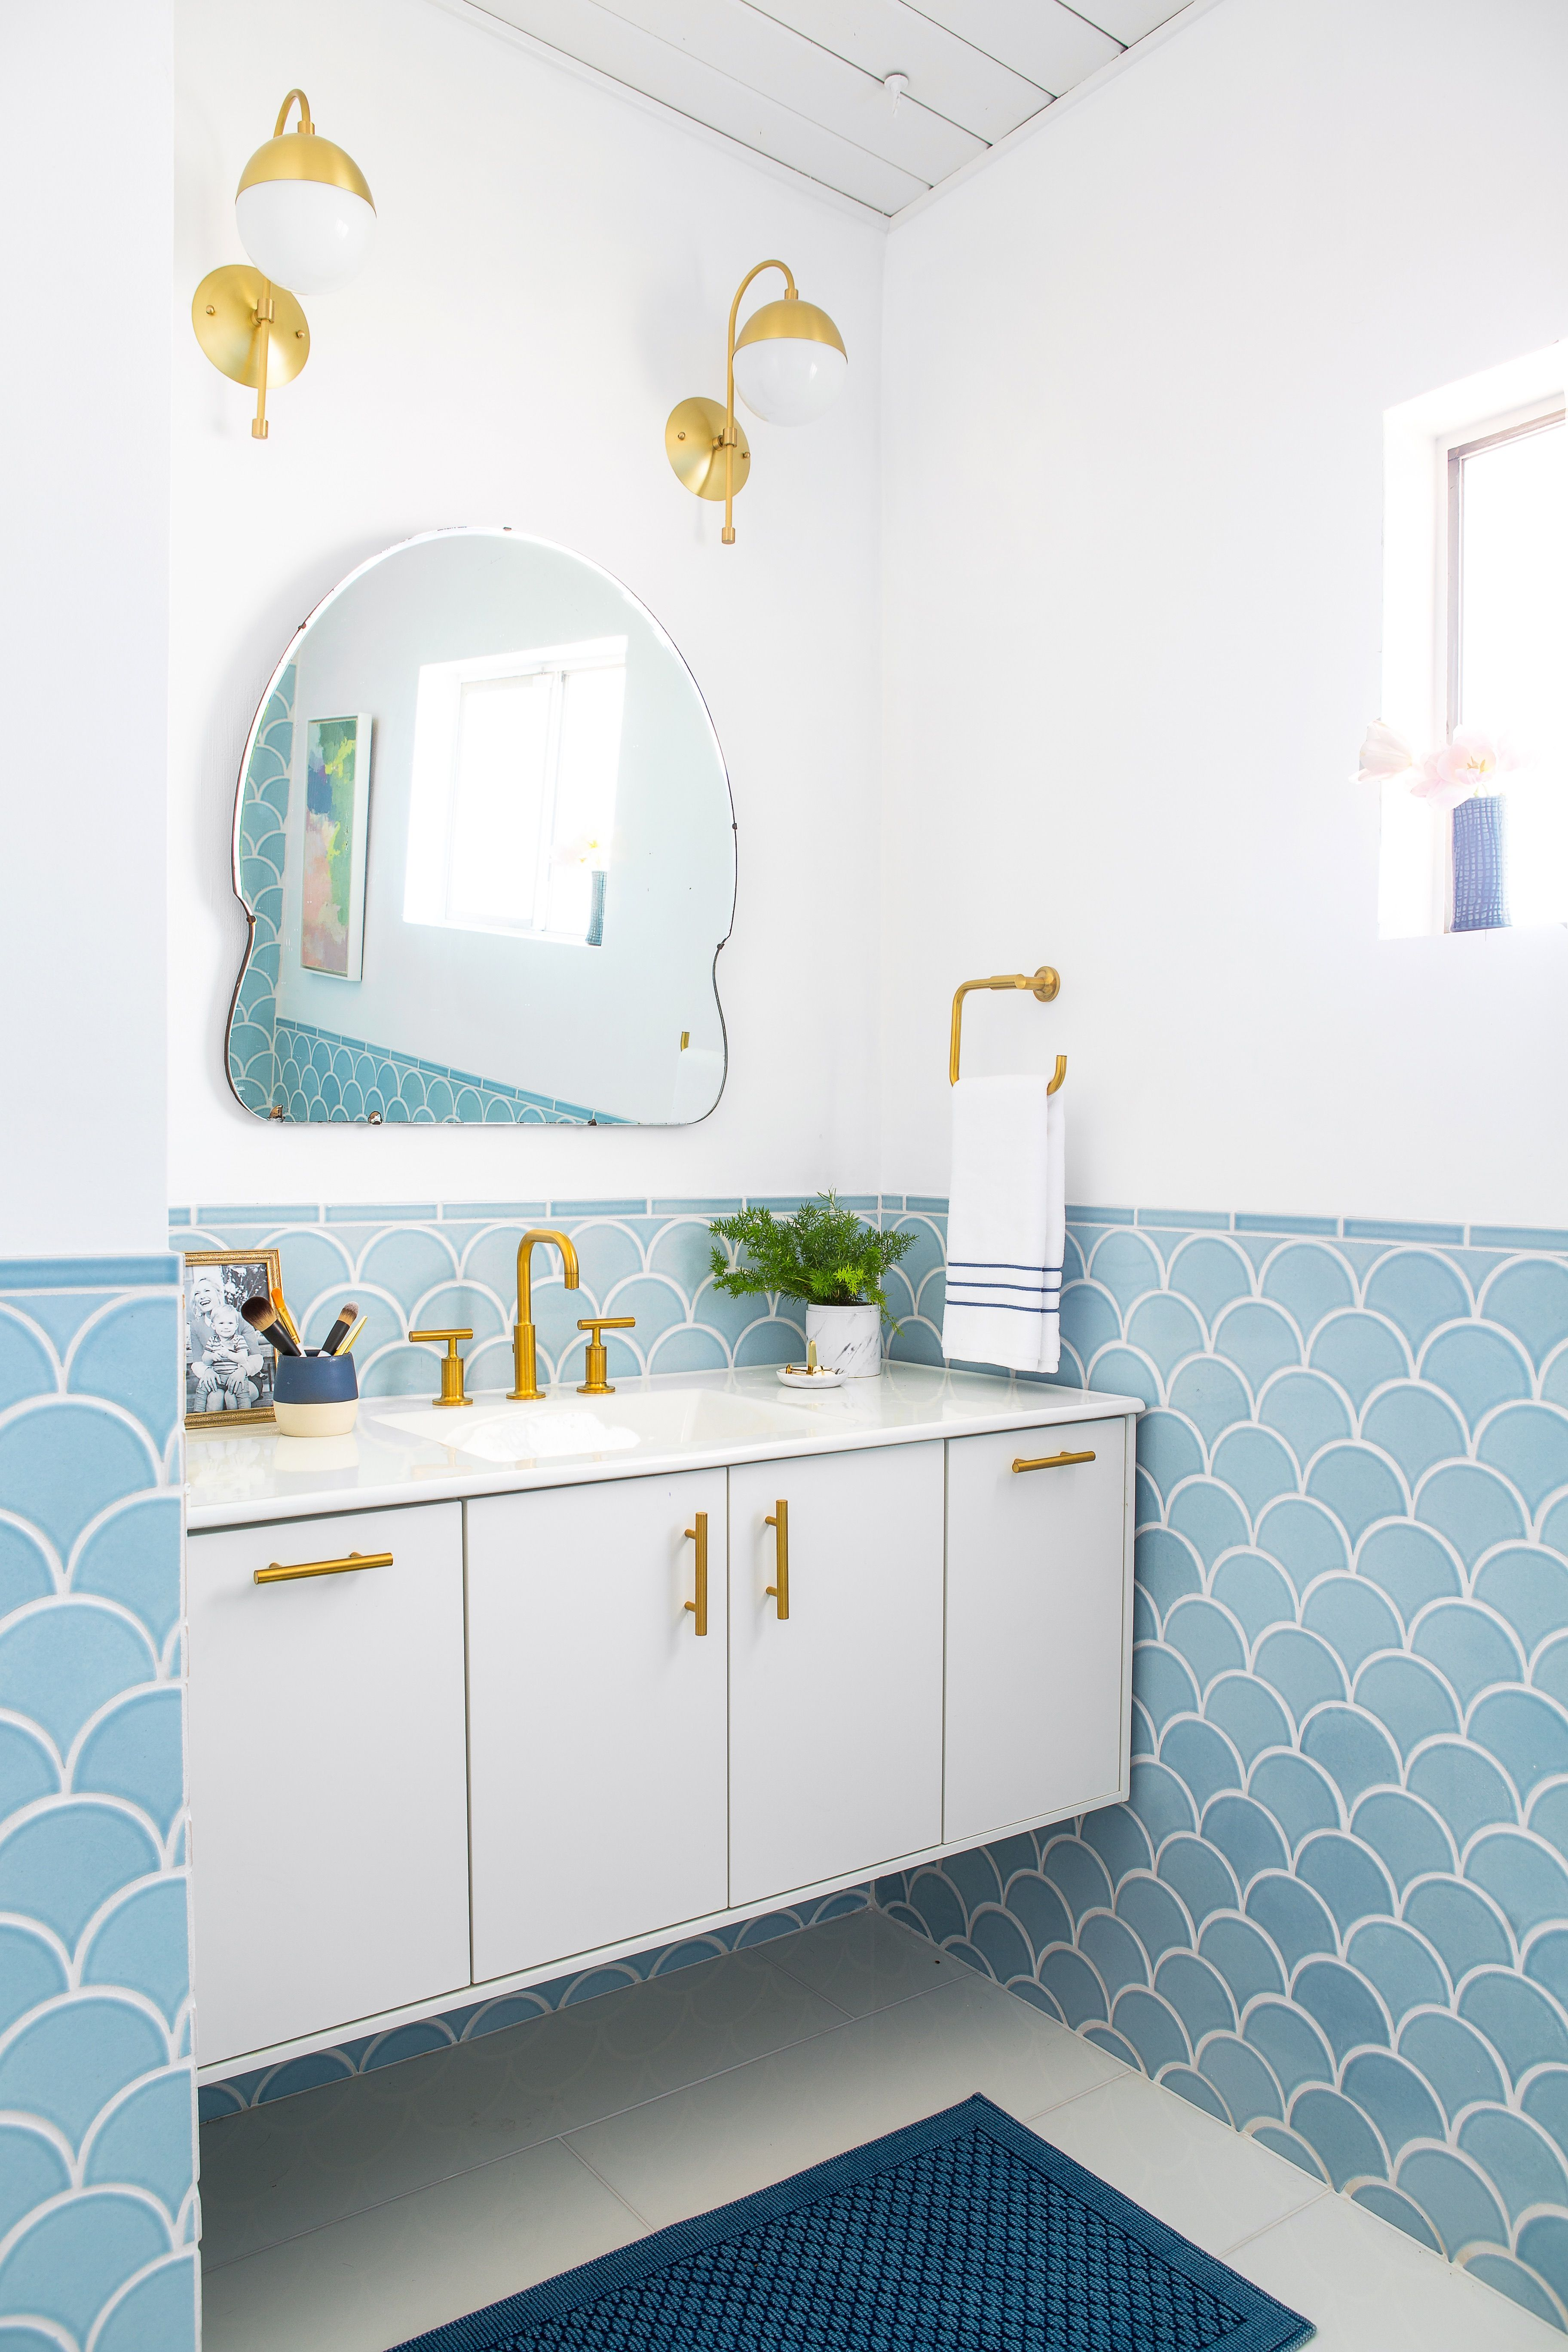 20 Home Decor Trends That Made A Statement In 2016 Bathroom